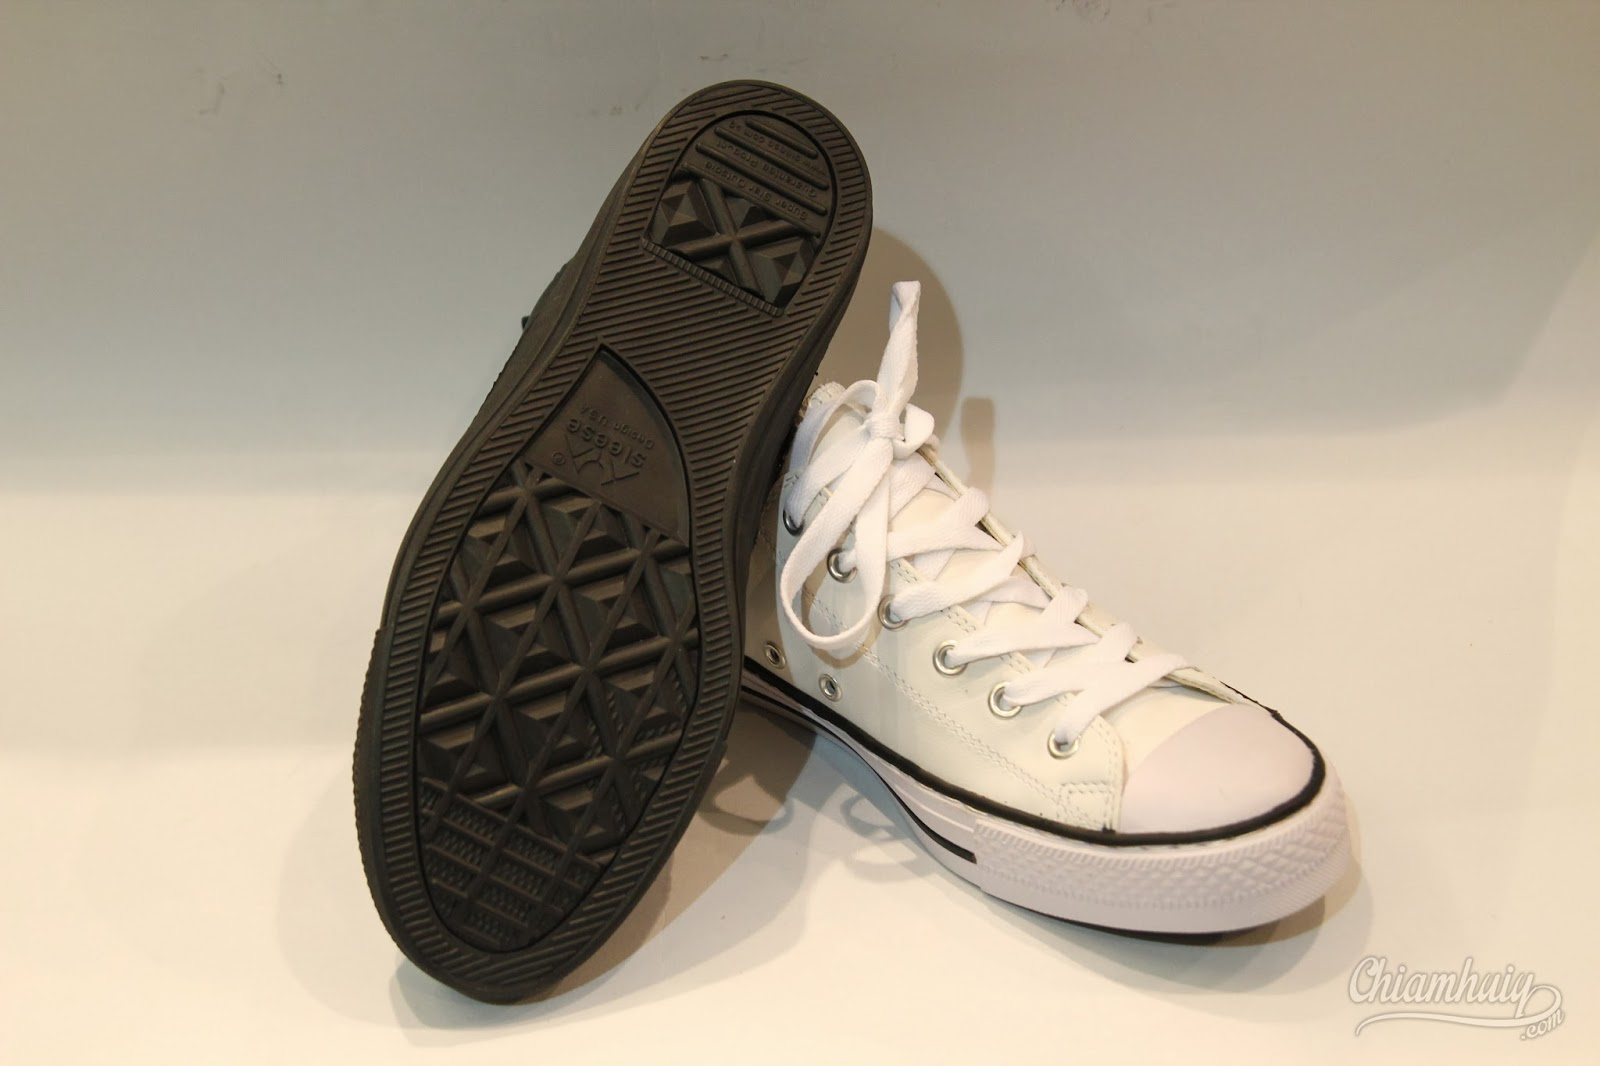 Skate shoes singapore